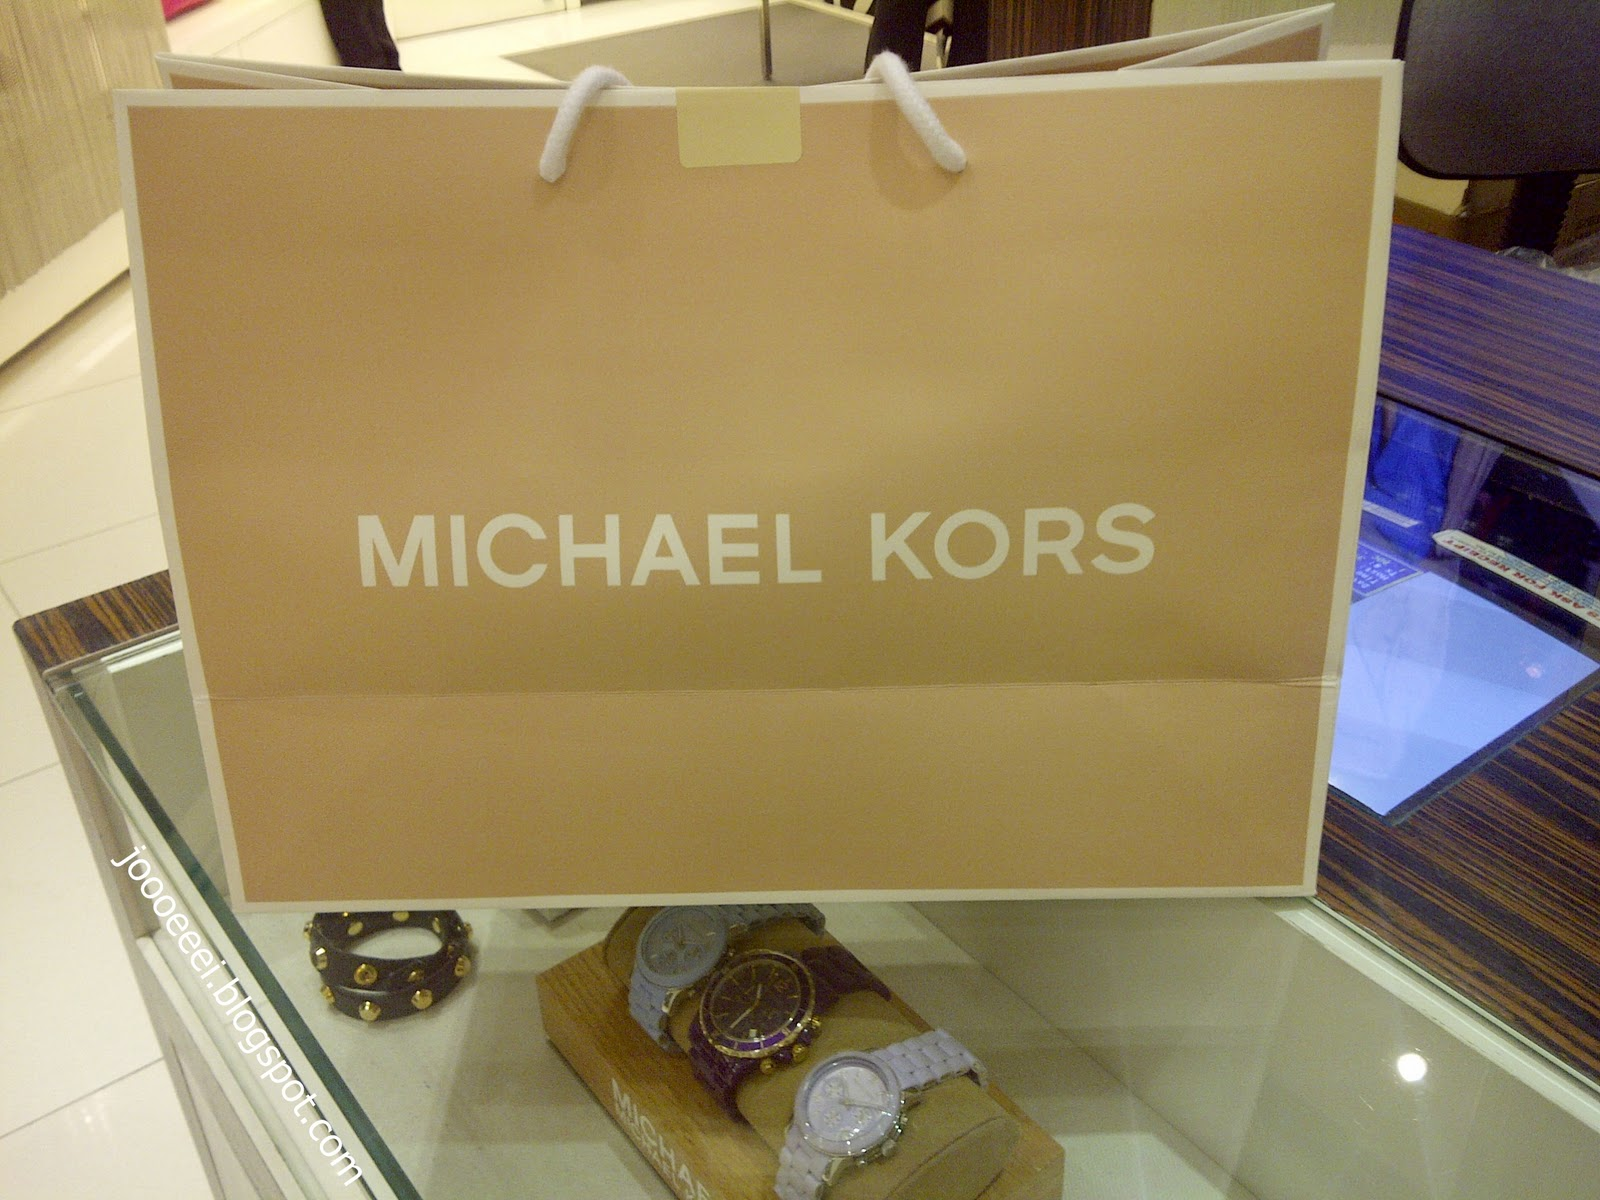 Michael kors tote bags philippines - Guess What S In The Bag